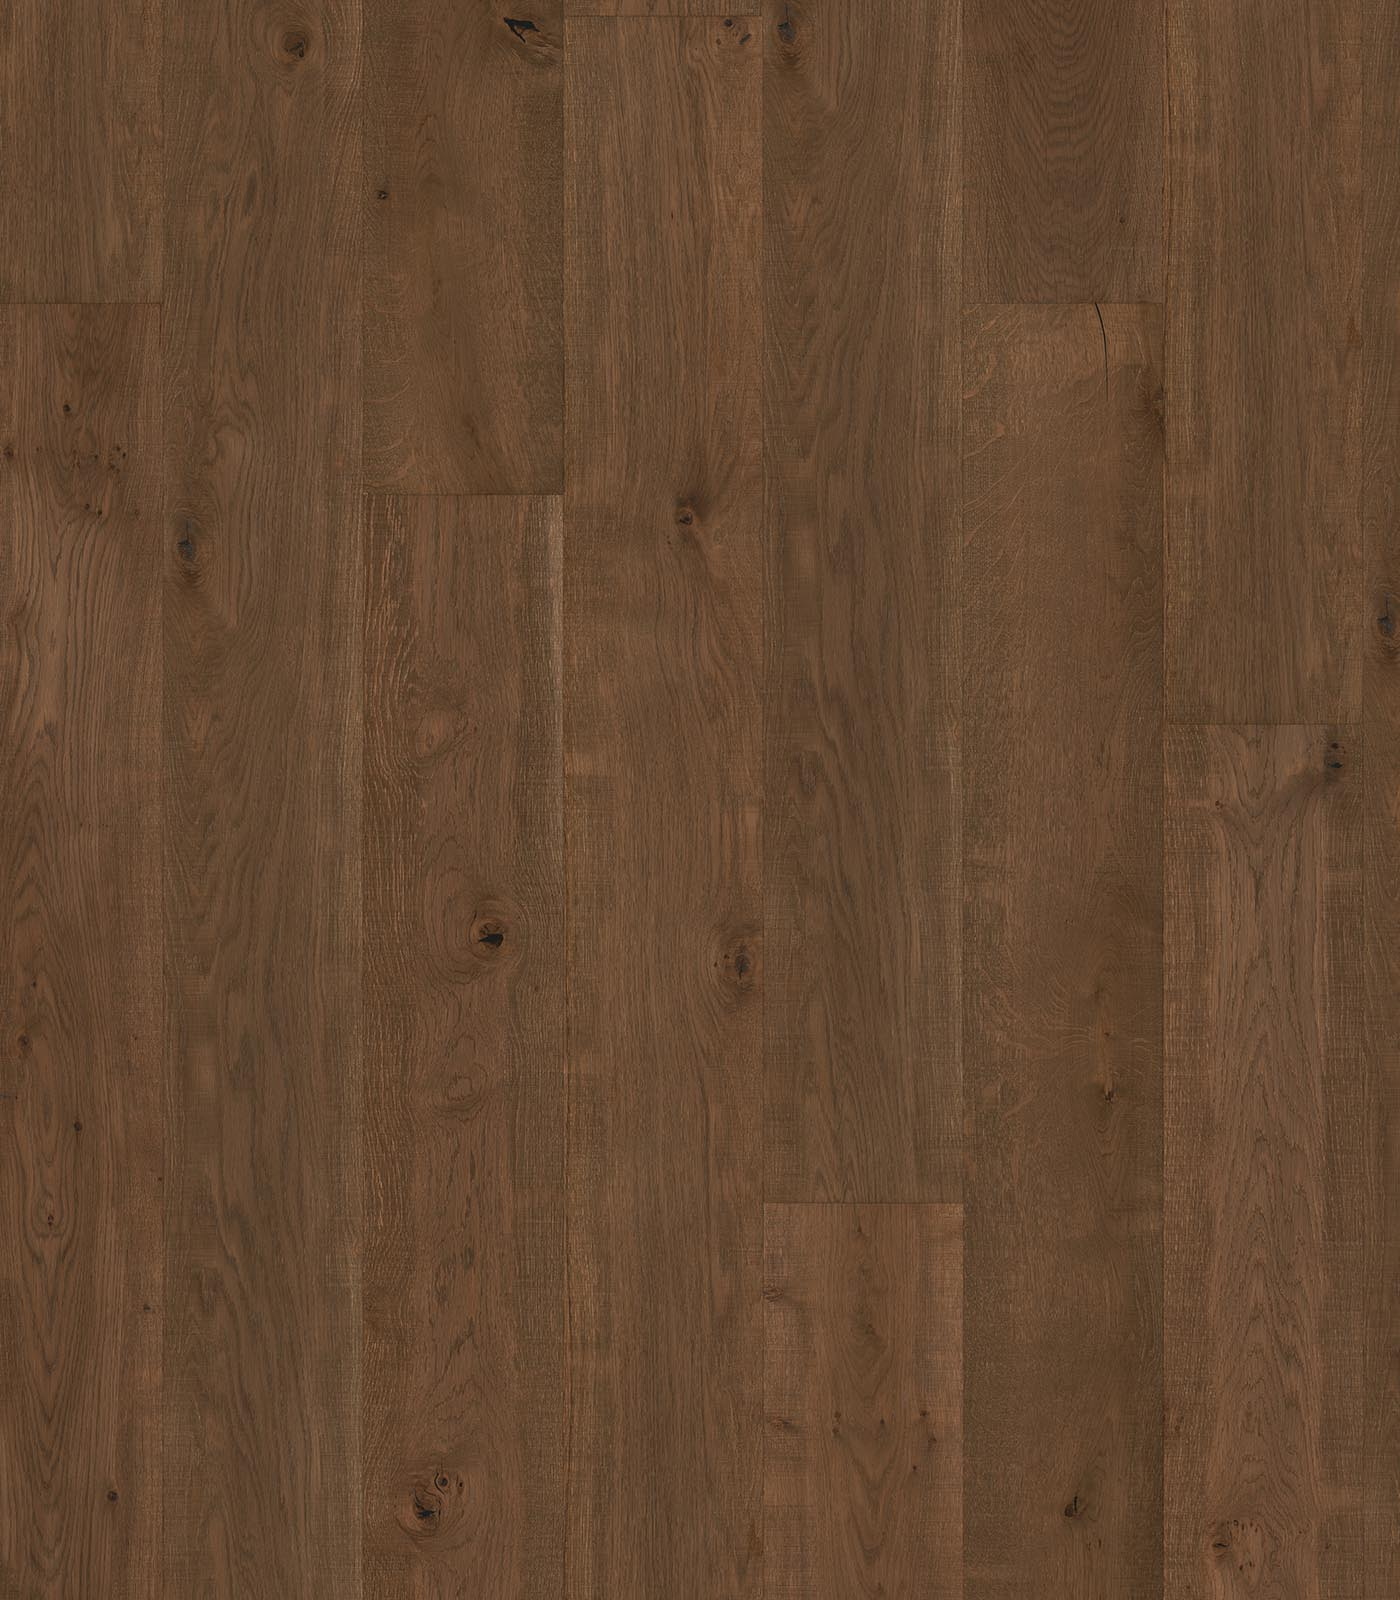 Kings Peak-After Oak collection floors-Tasmanian Oak